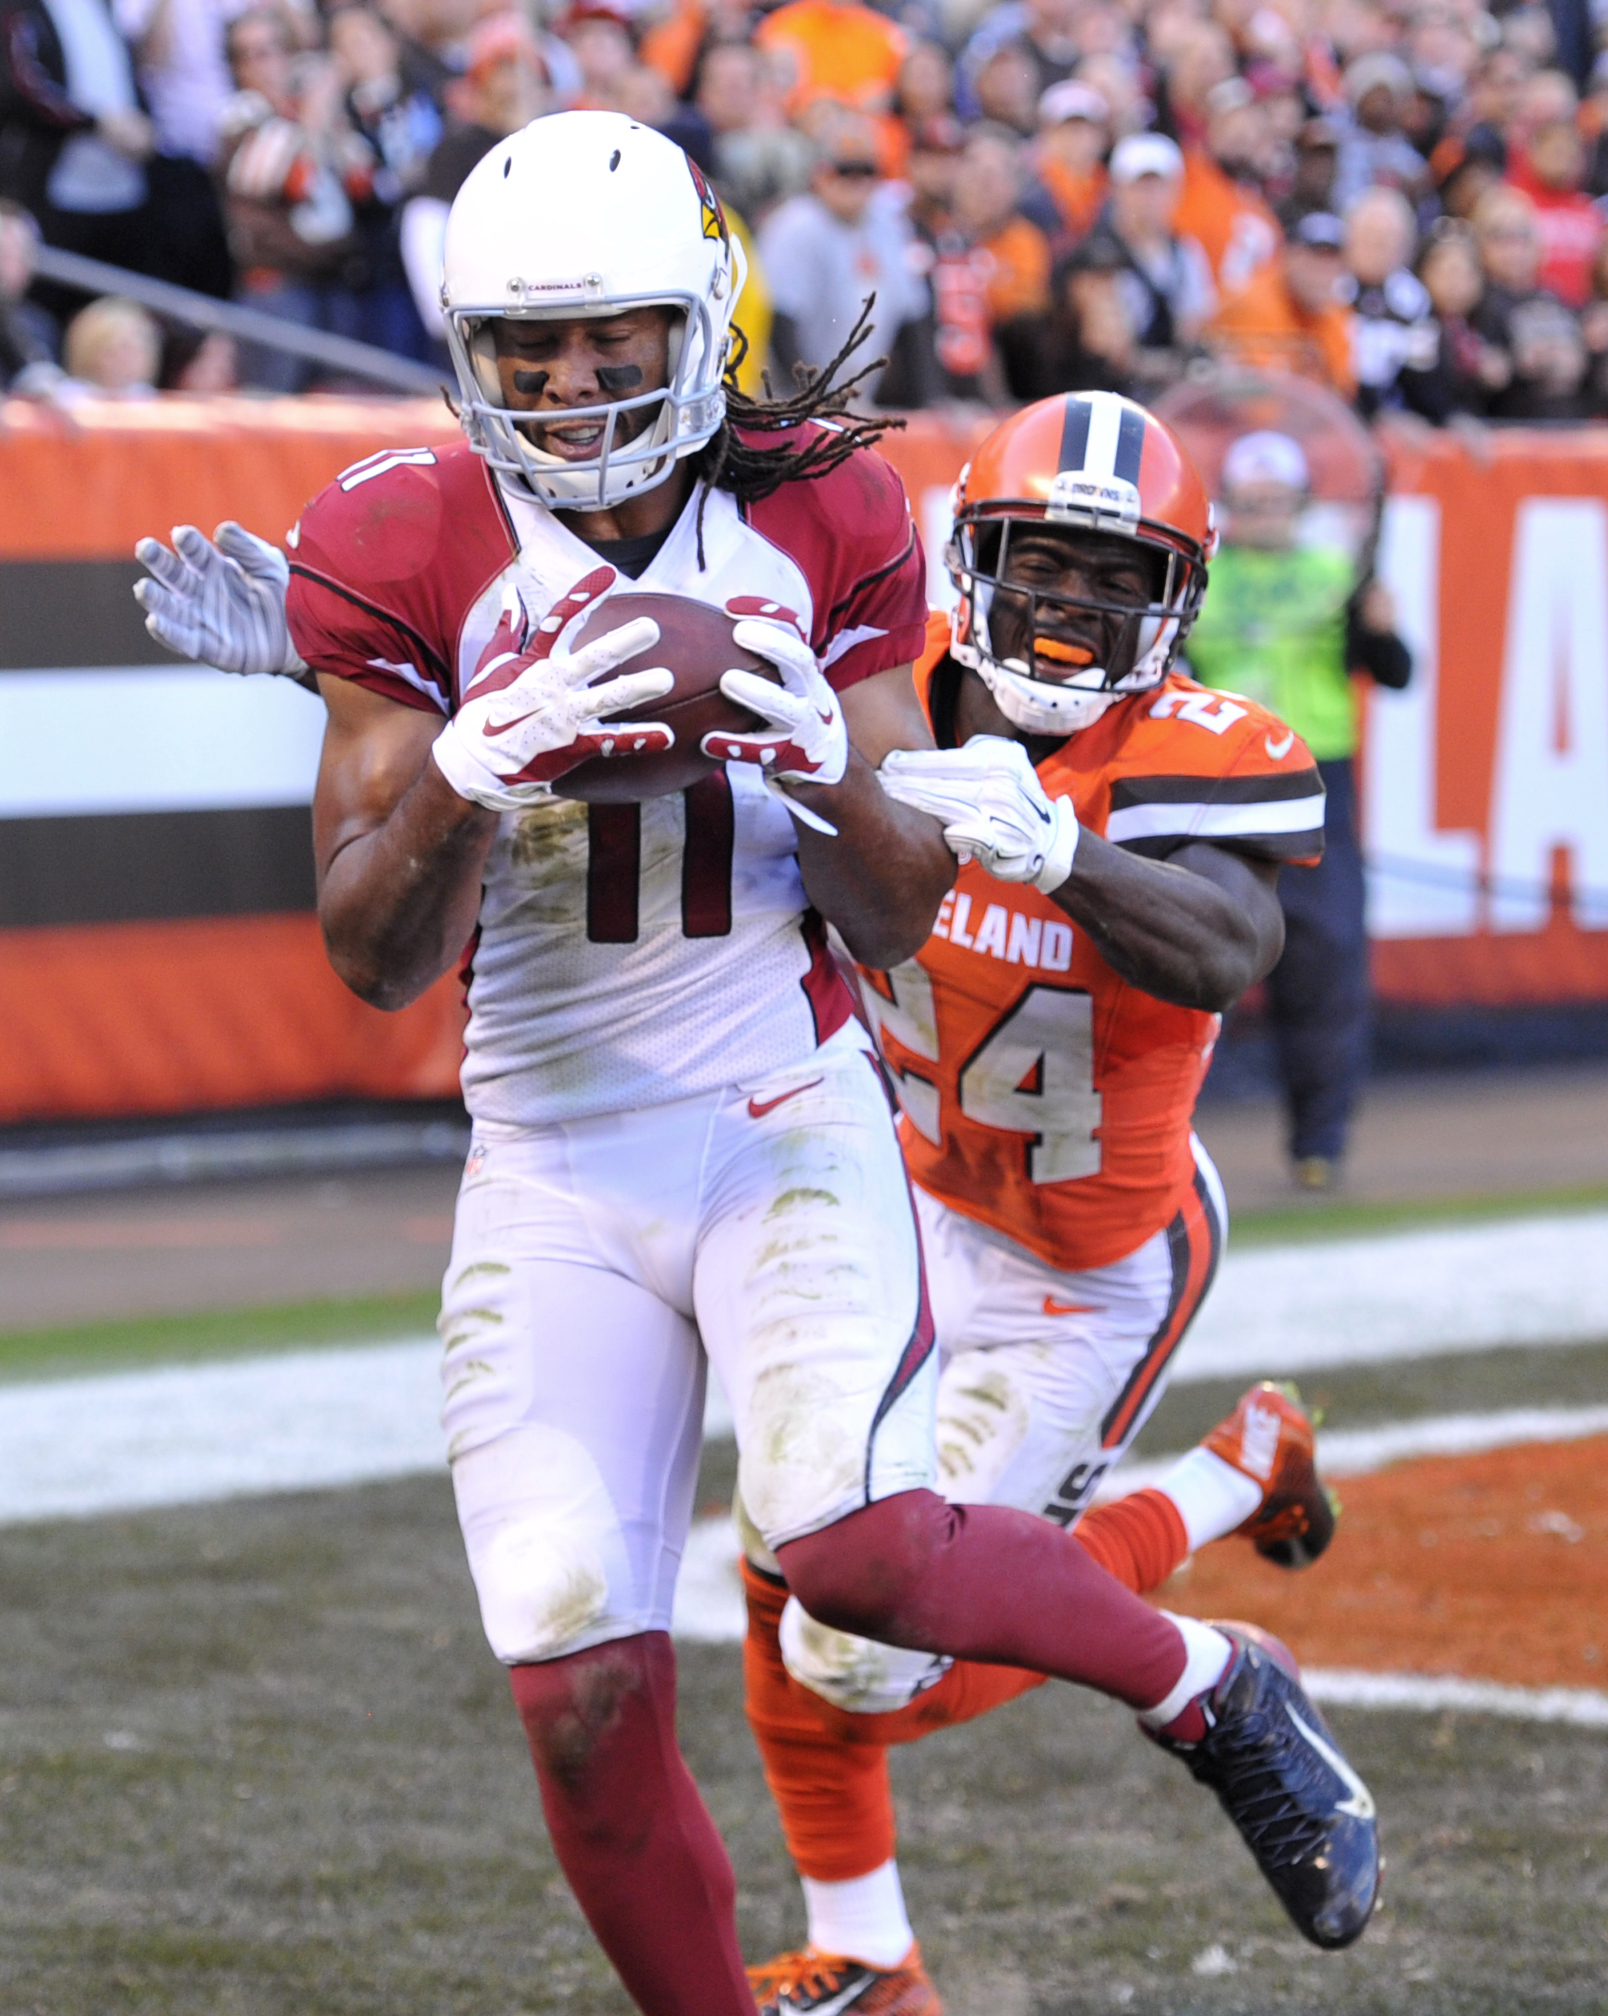 Arizona Cardinals wide receiver Larry Fitzgerald catches a a six-yard touchdown pass in the second half of an NFL football game against Cleveland Browns' Johnson Bademosi, Sunday, Nov. 1, 2015, in Cleveland. (AP Photo/David Richard)